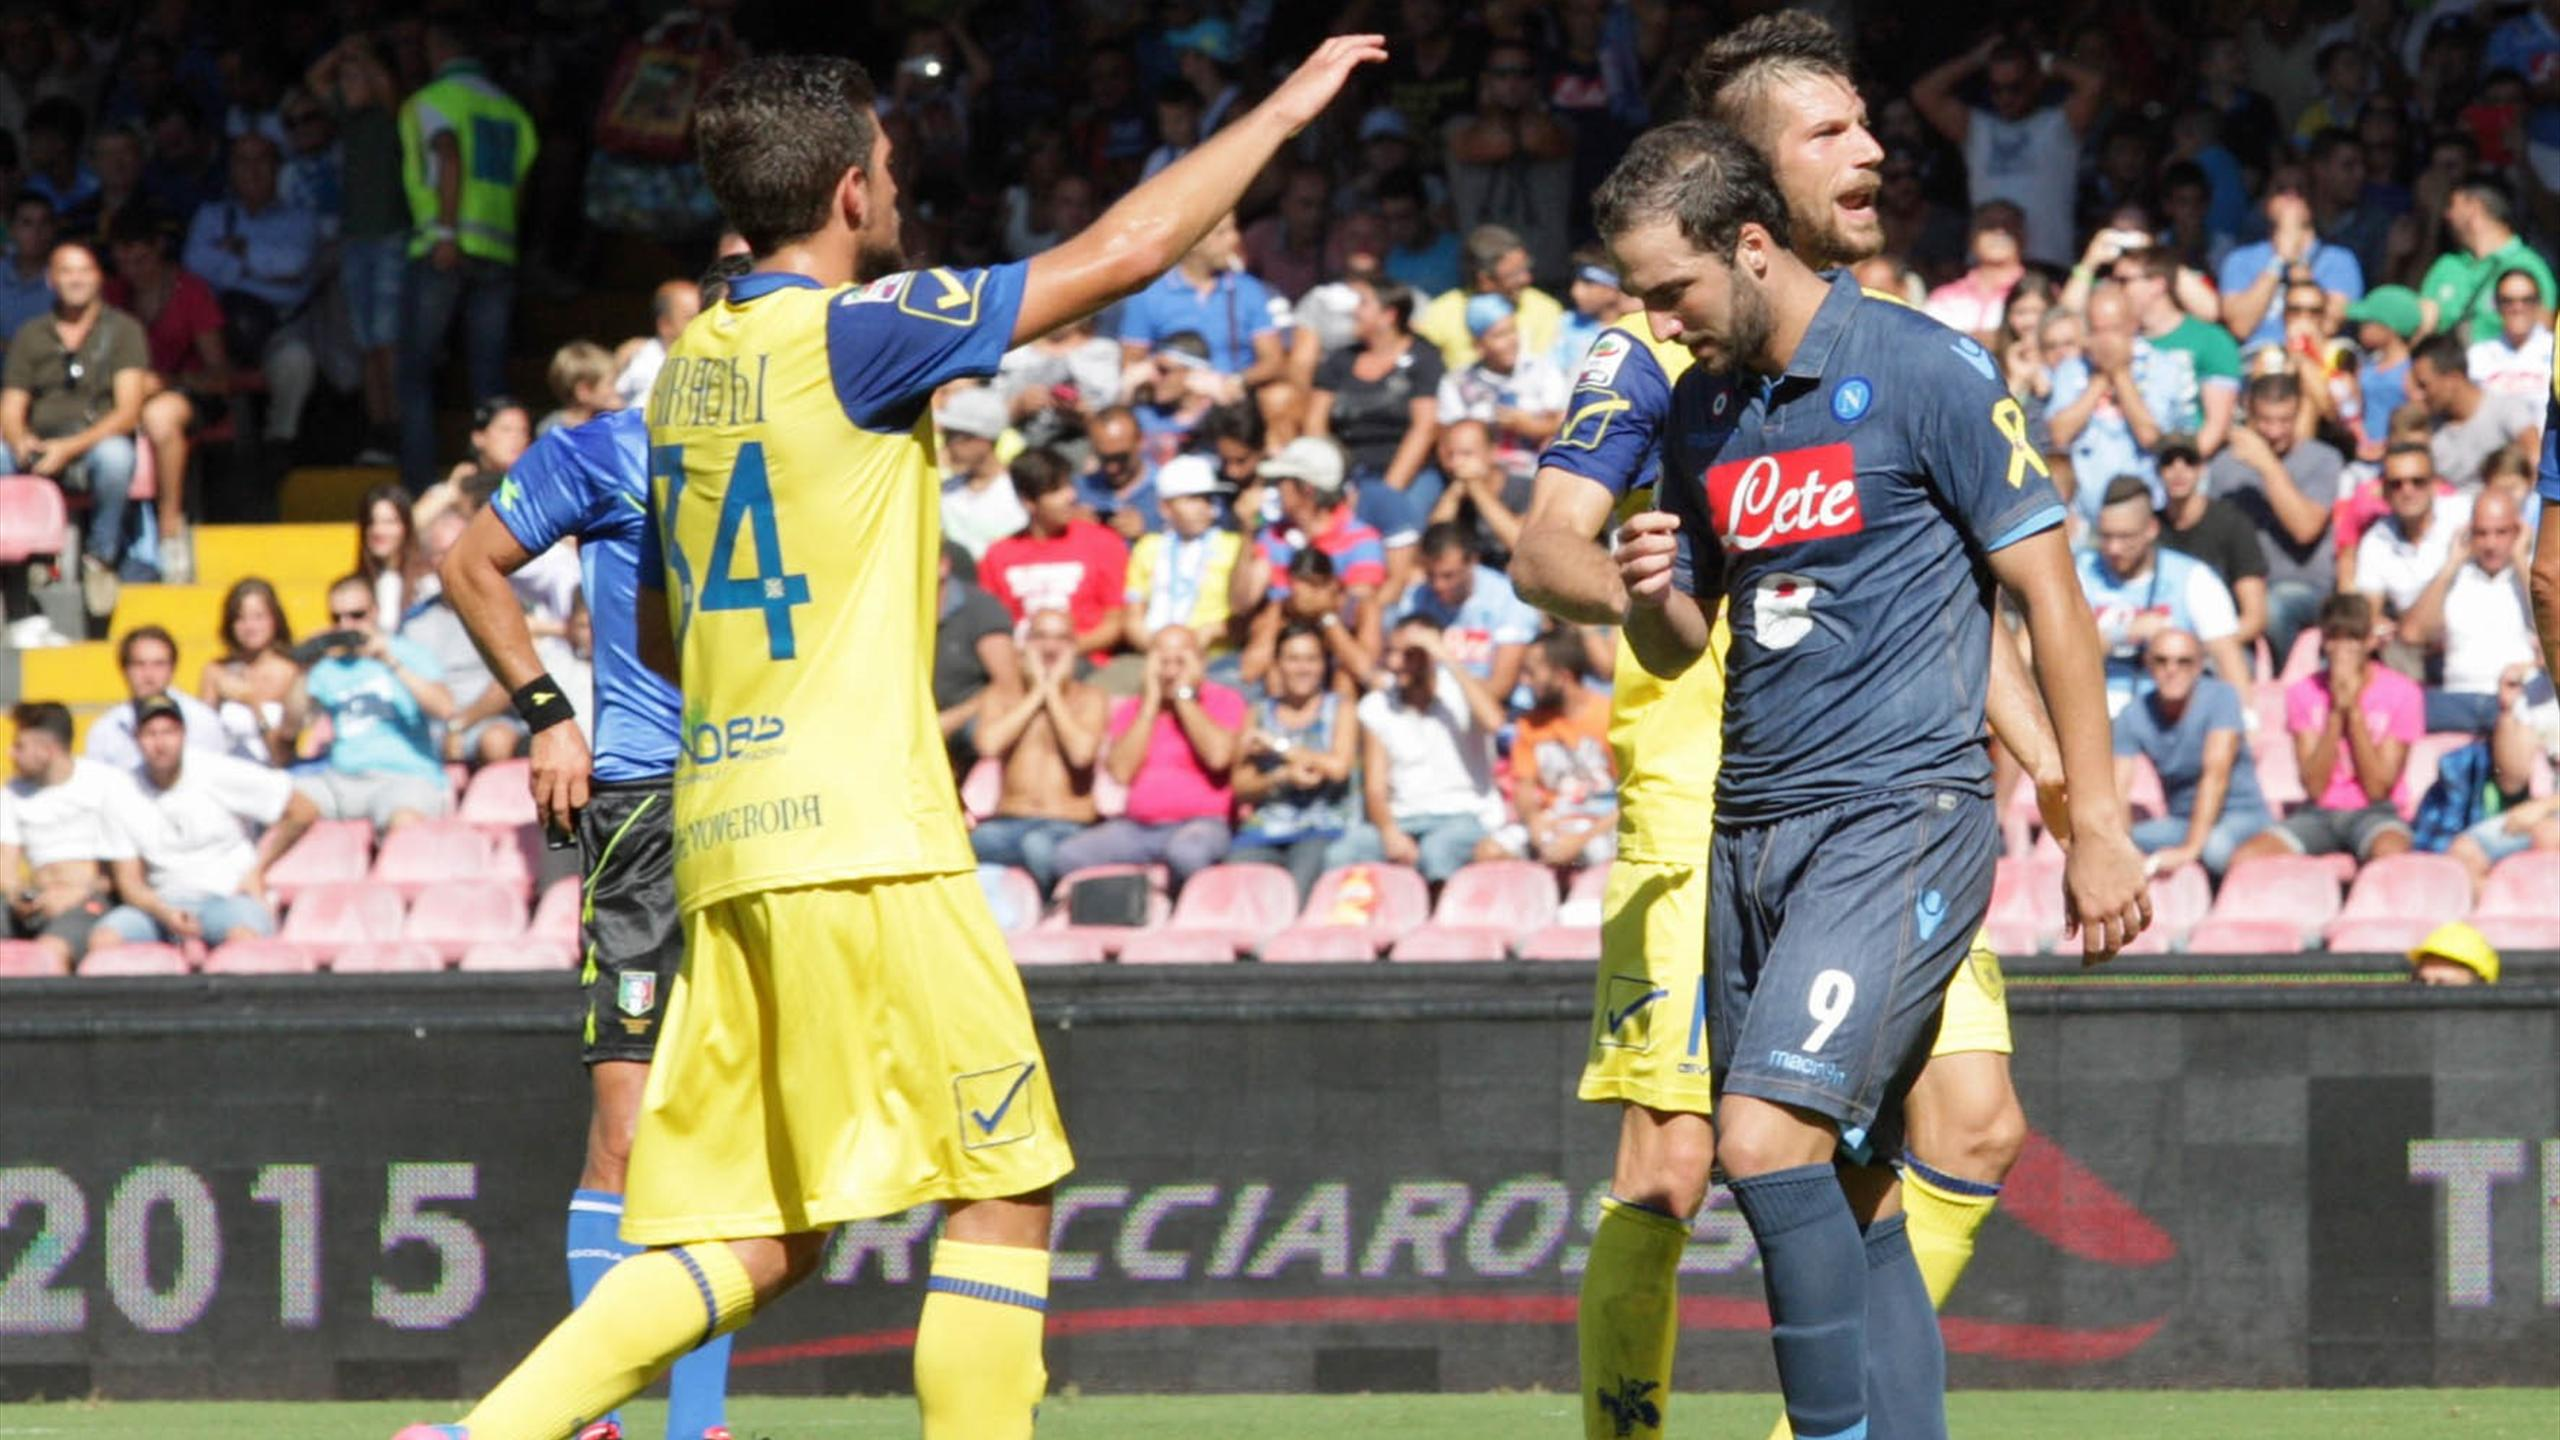 Video: Napoli vs Chievo